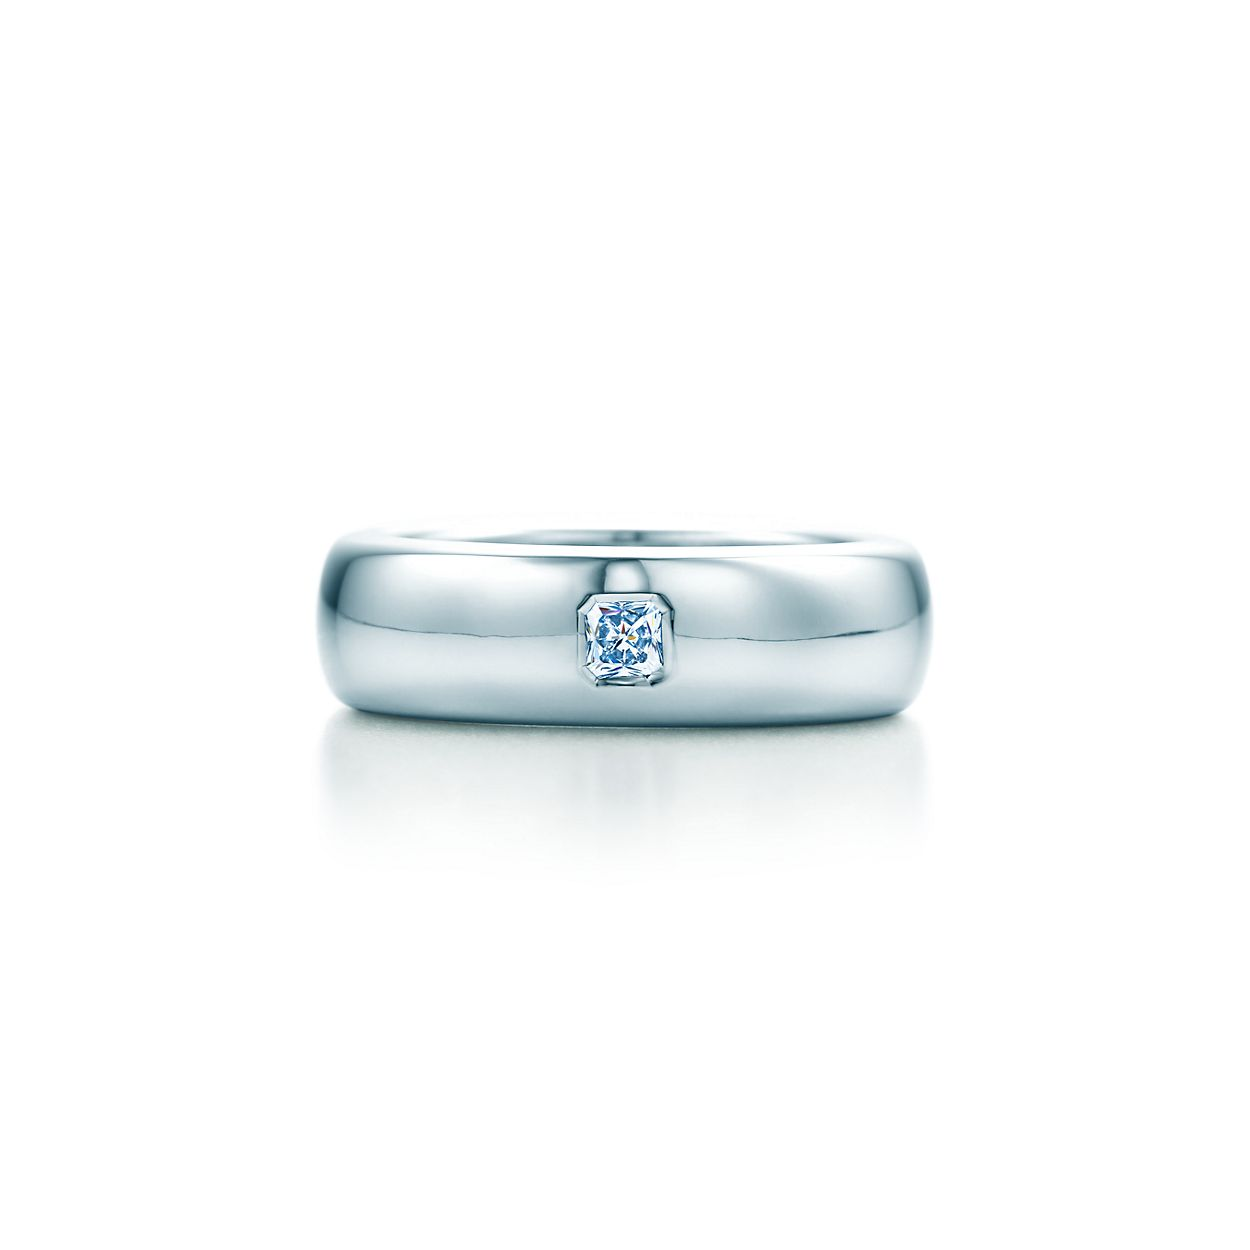 tiffany classicwedding band ring - Wedding Band Ring